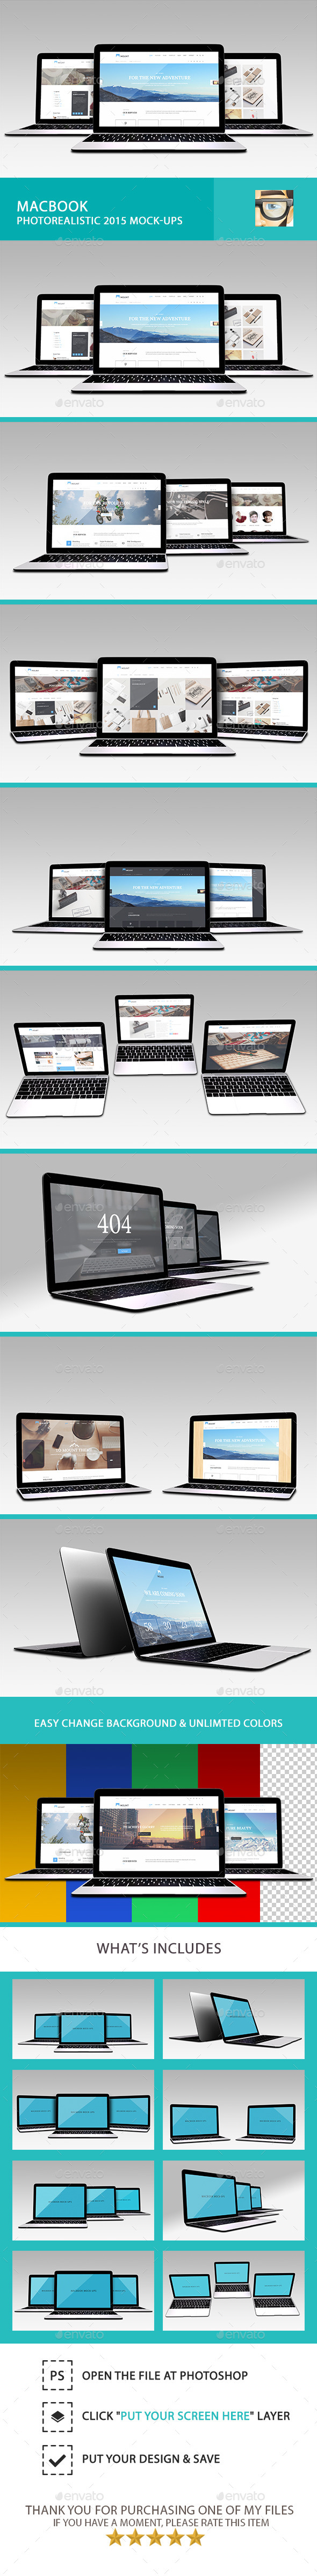 GraphicRiver MacBook Photorealistic 2015 Mock-Ups 11105190